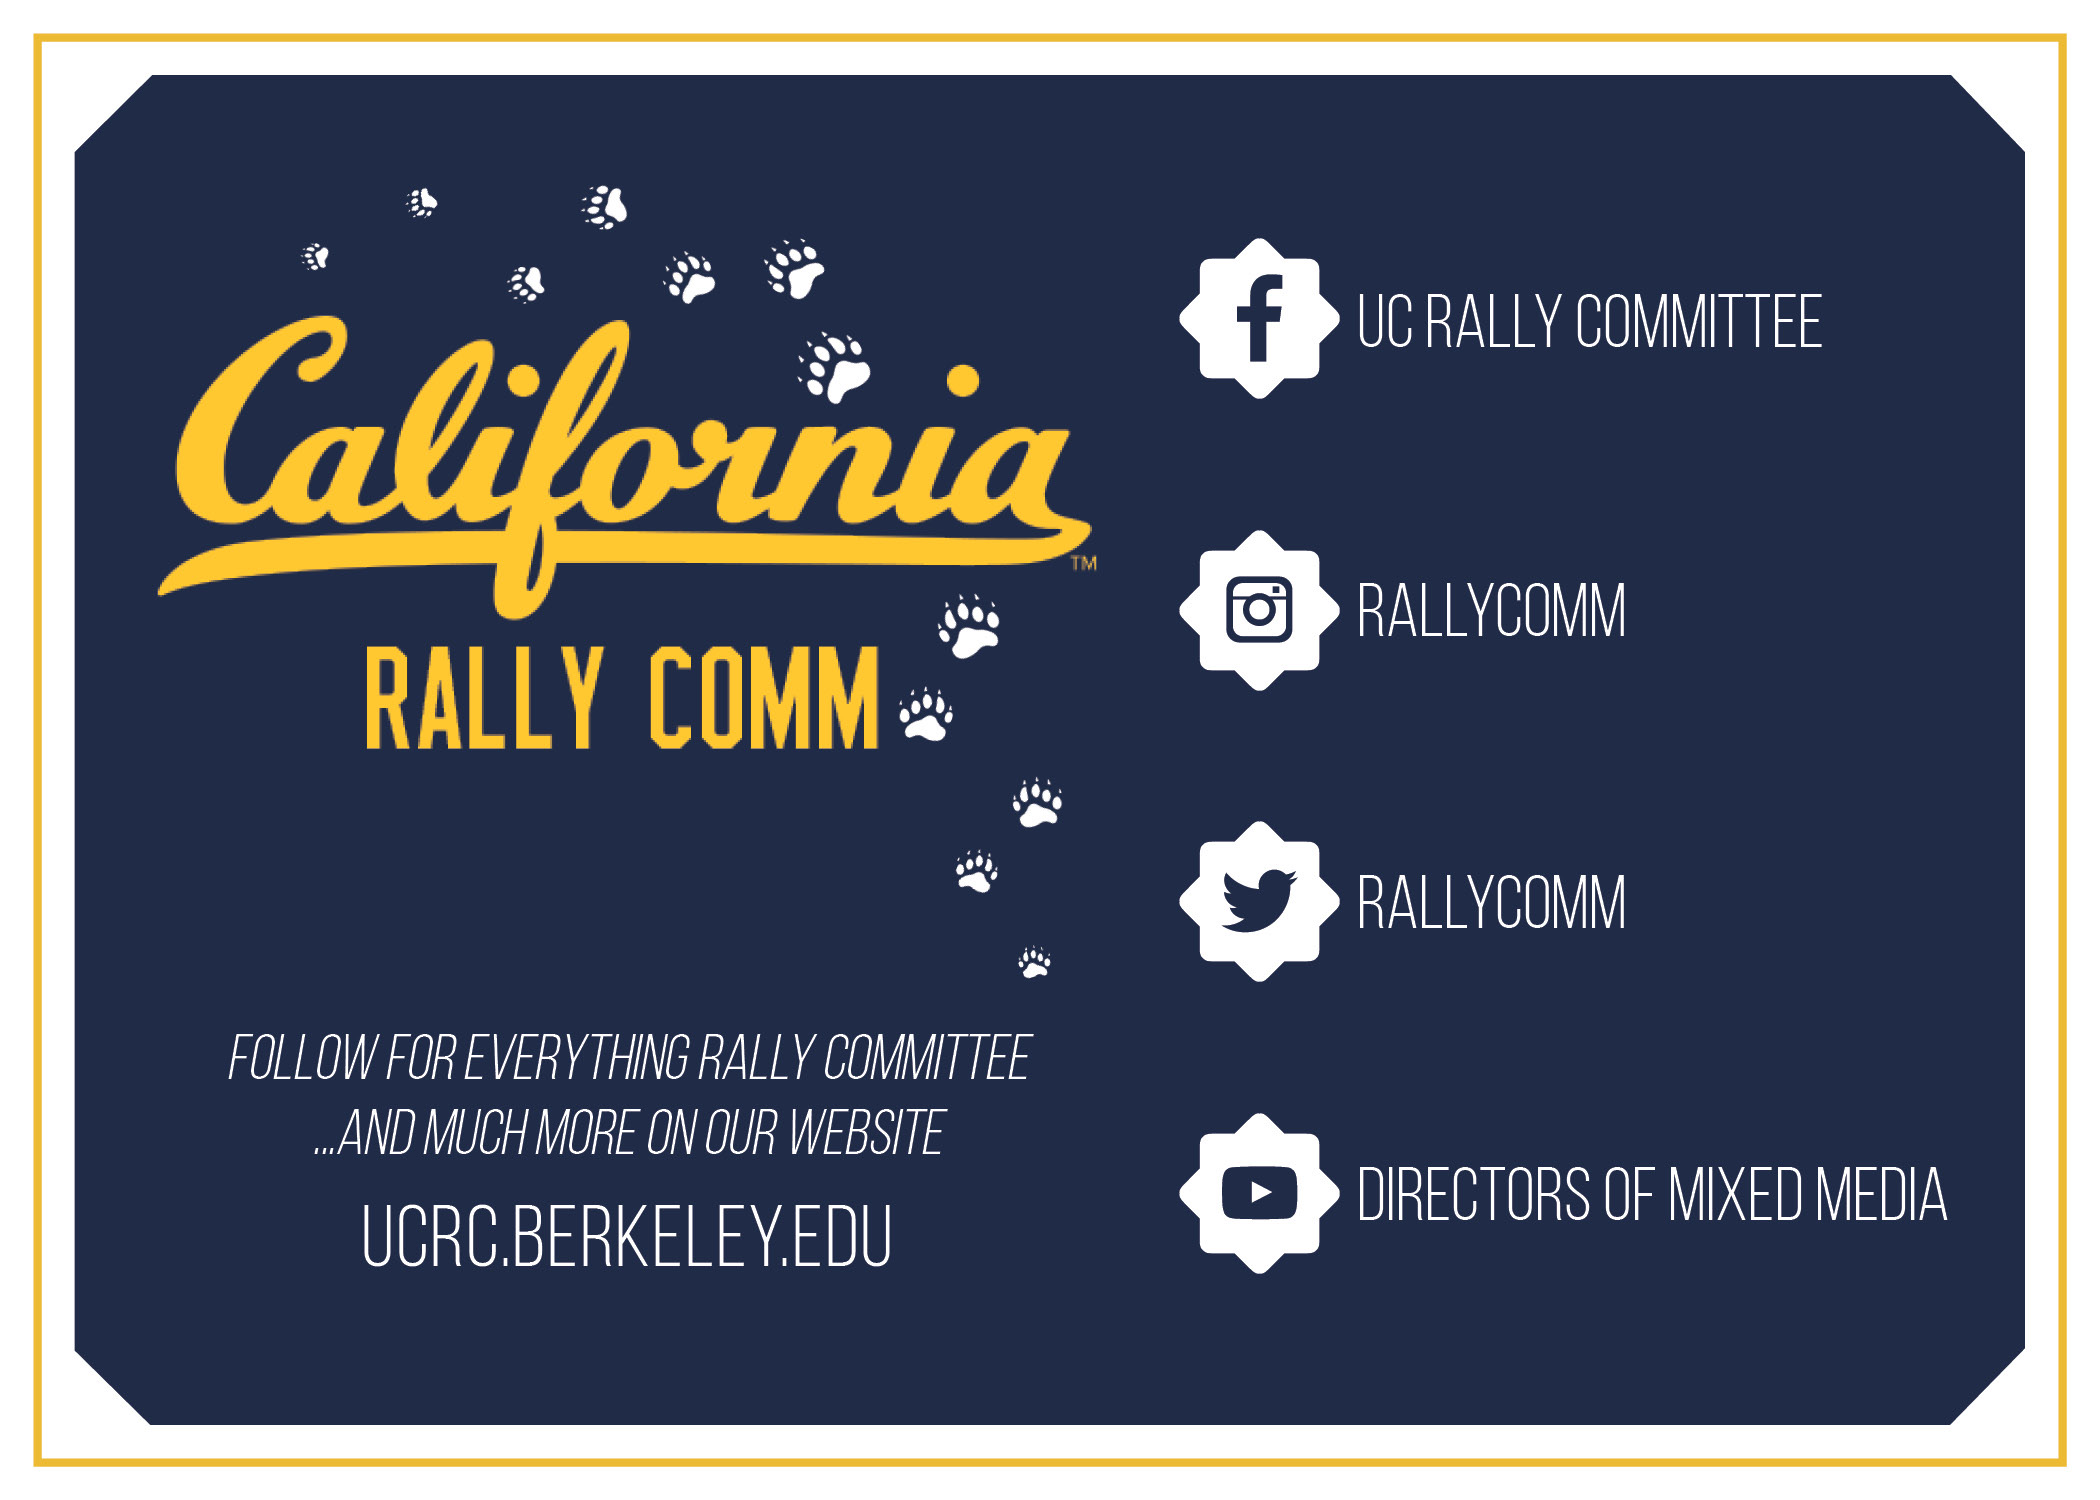 RallyCommContacts